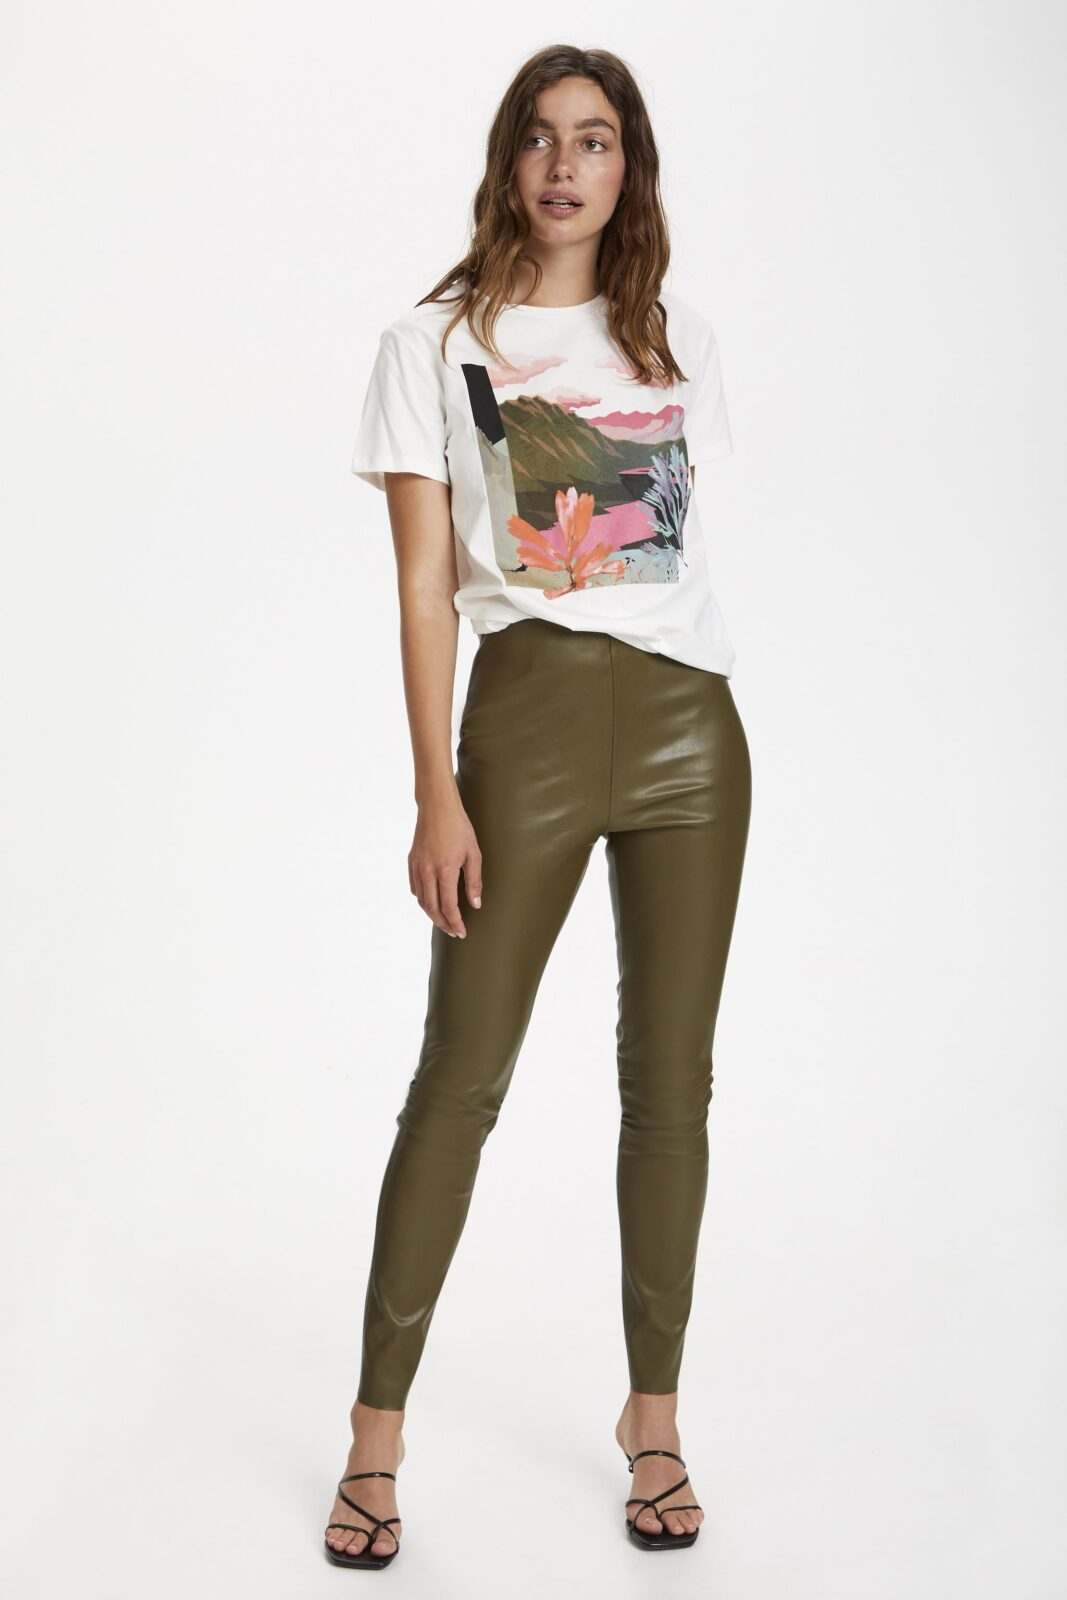 Soaked in Luxury Pleather Leggings Military Olive available on colmershill.com